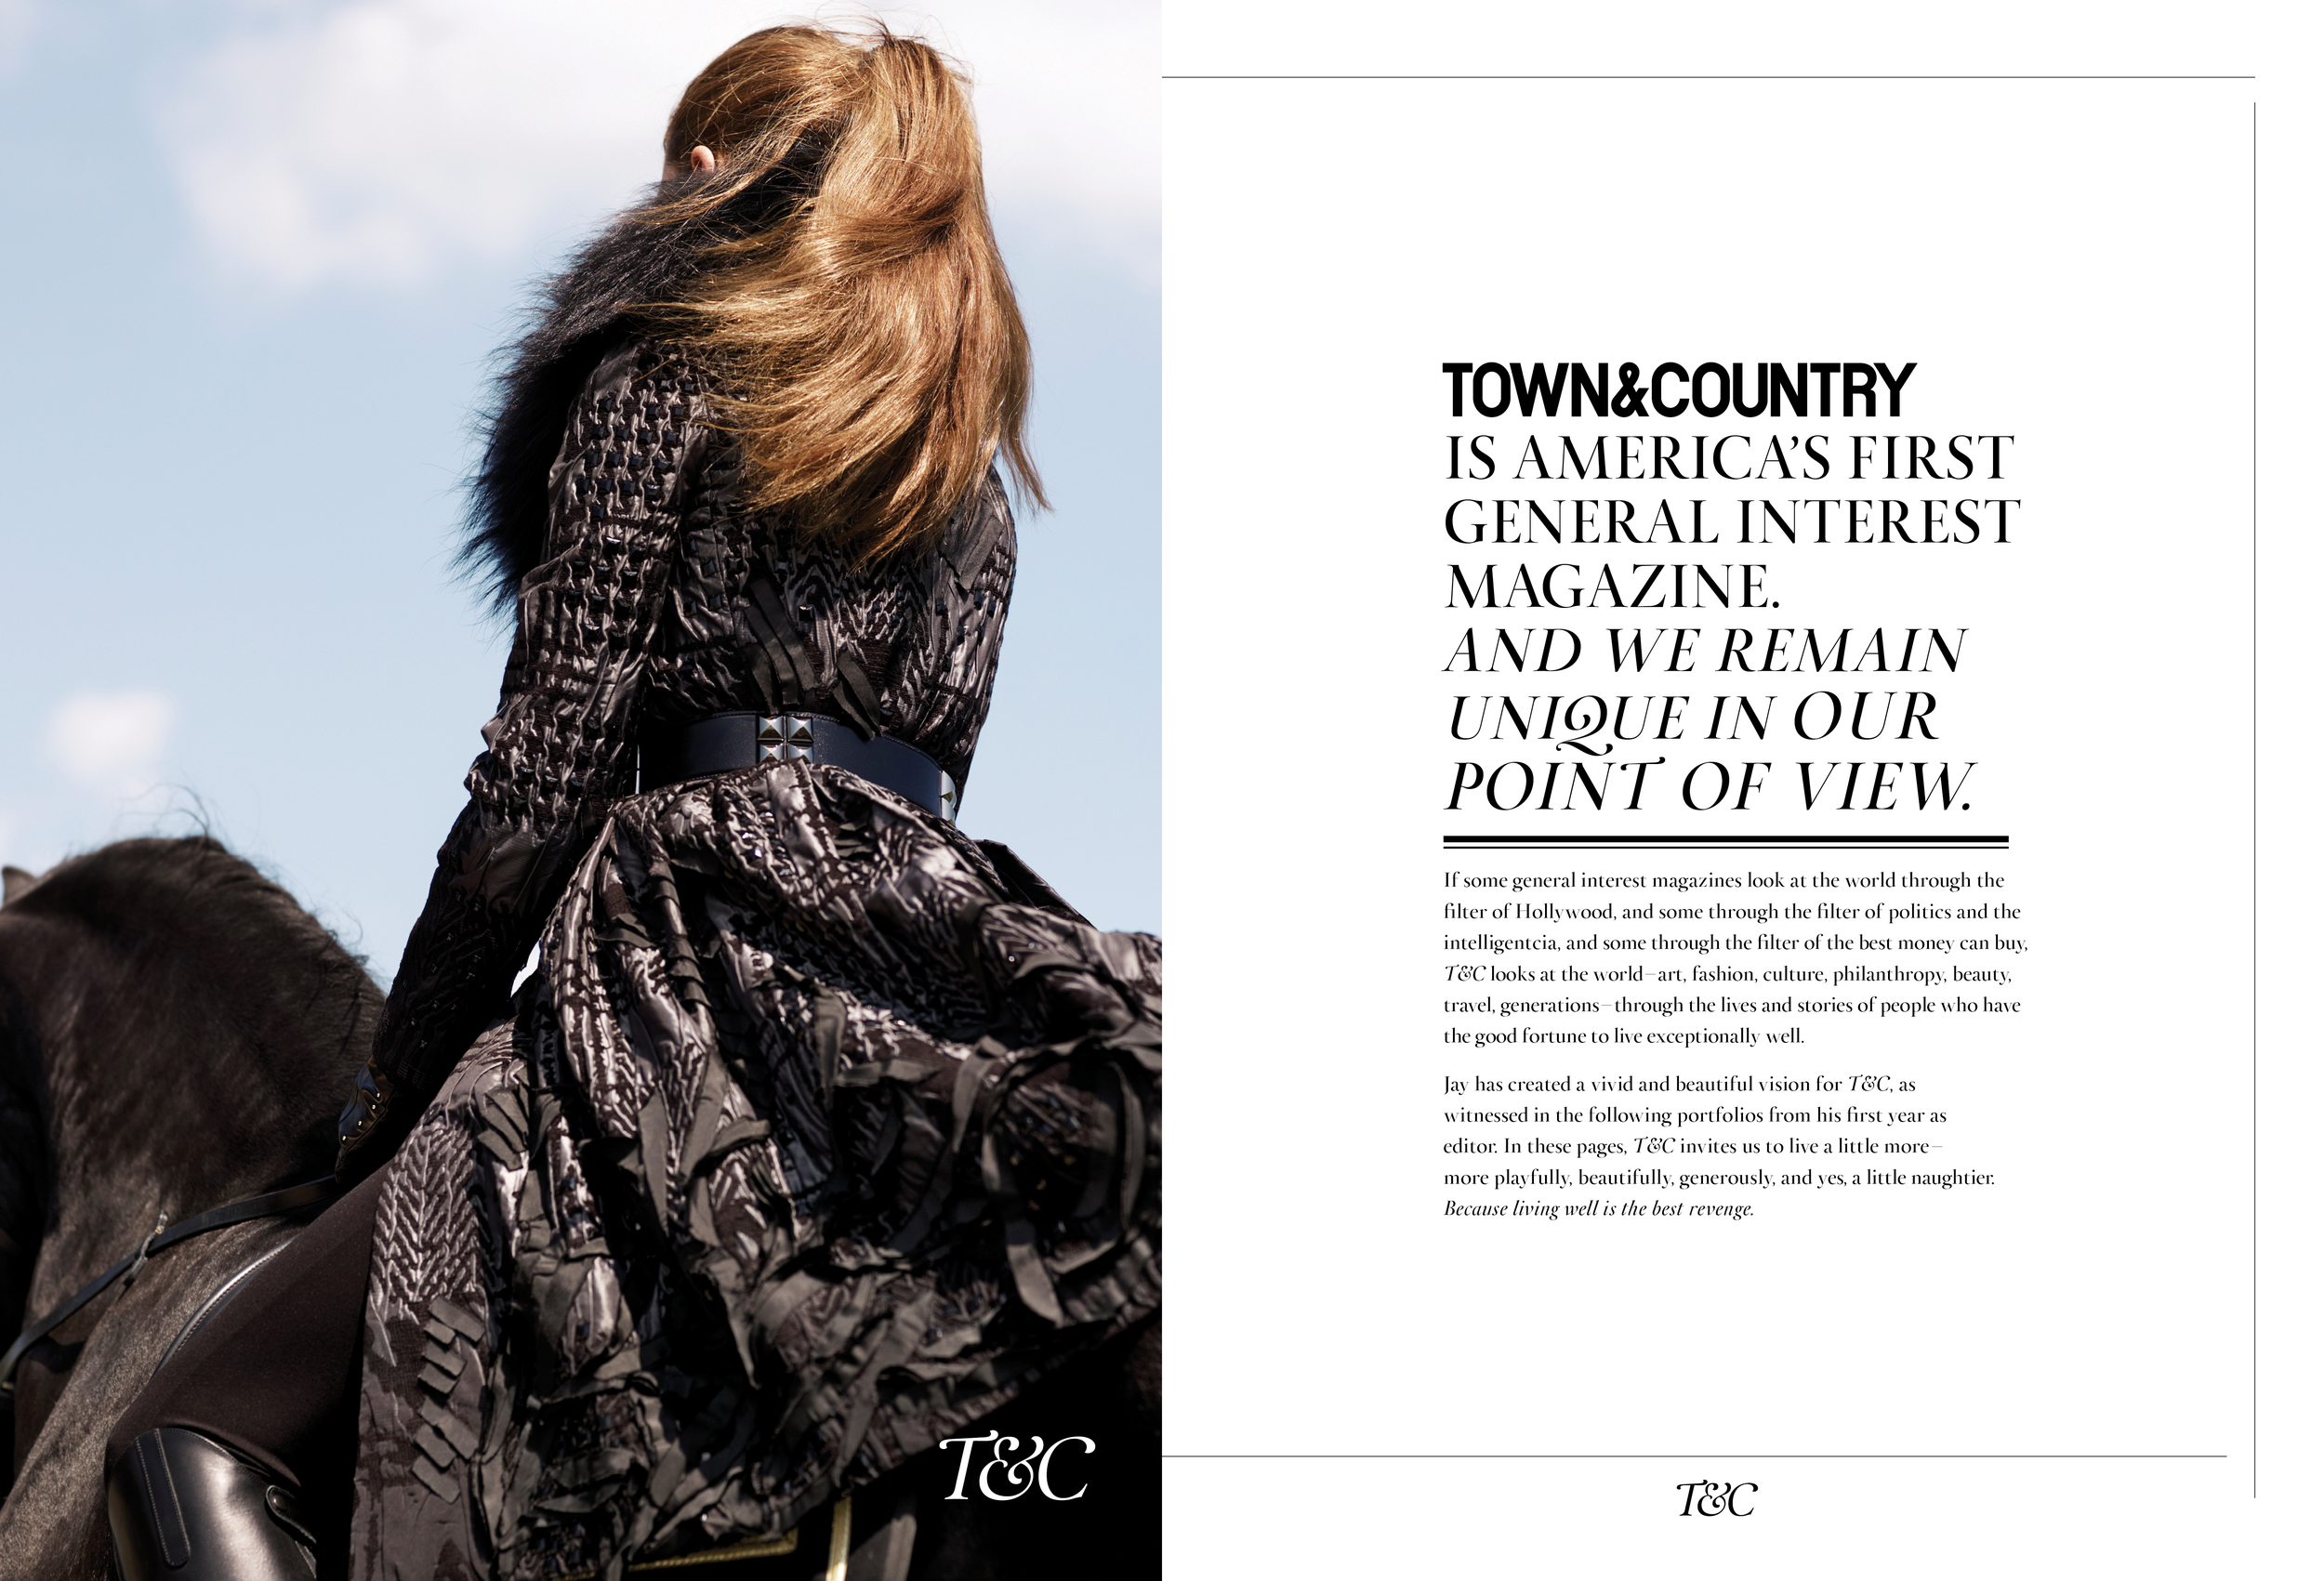 Town&Country_presentation_layouts_FINAL_9x12.255.jpg